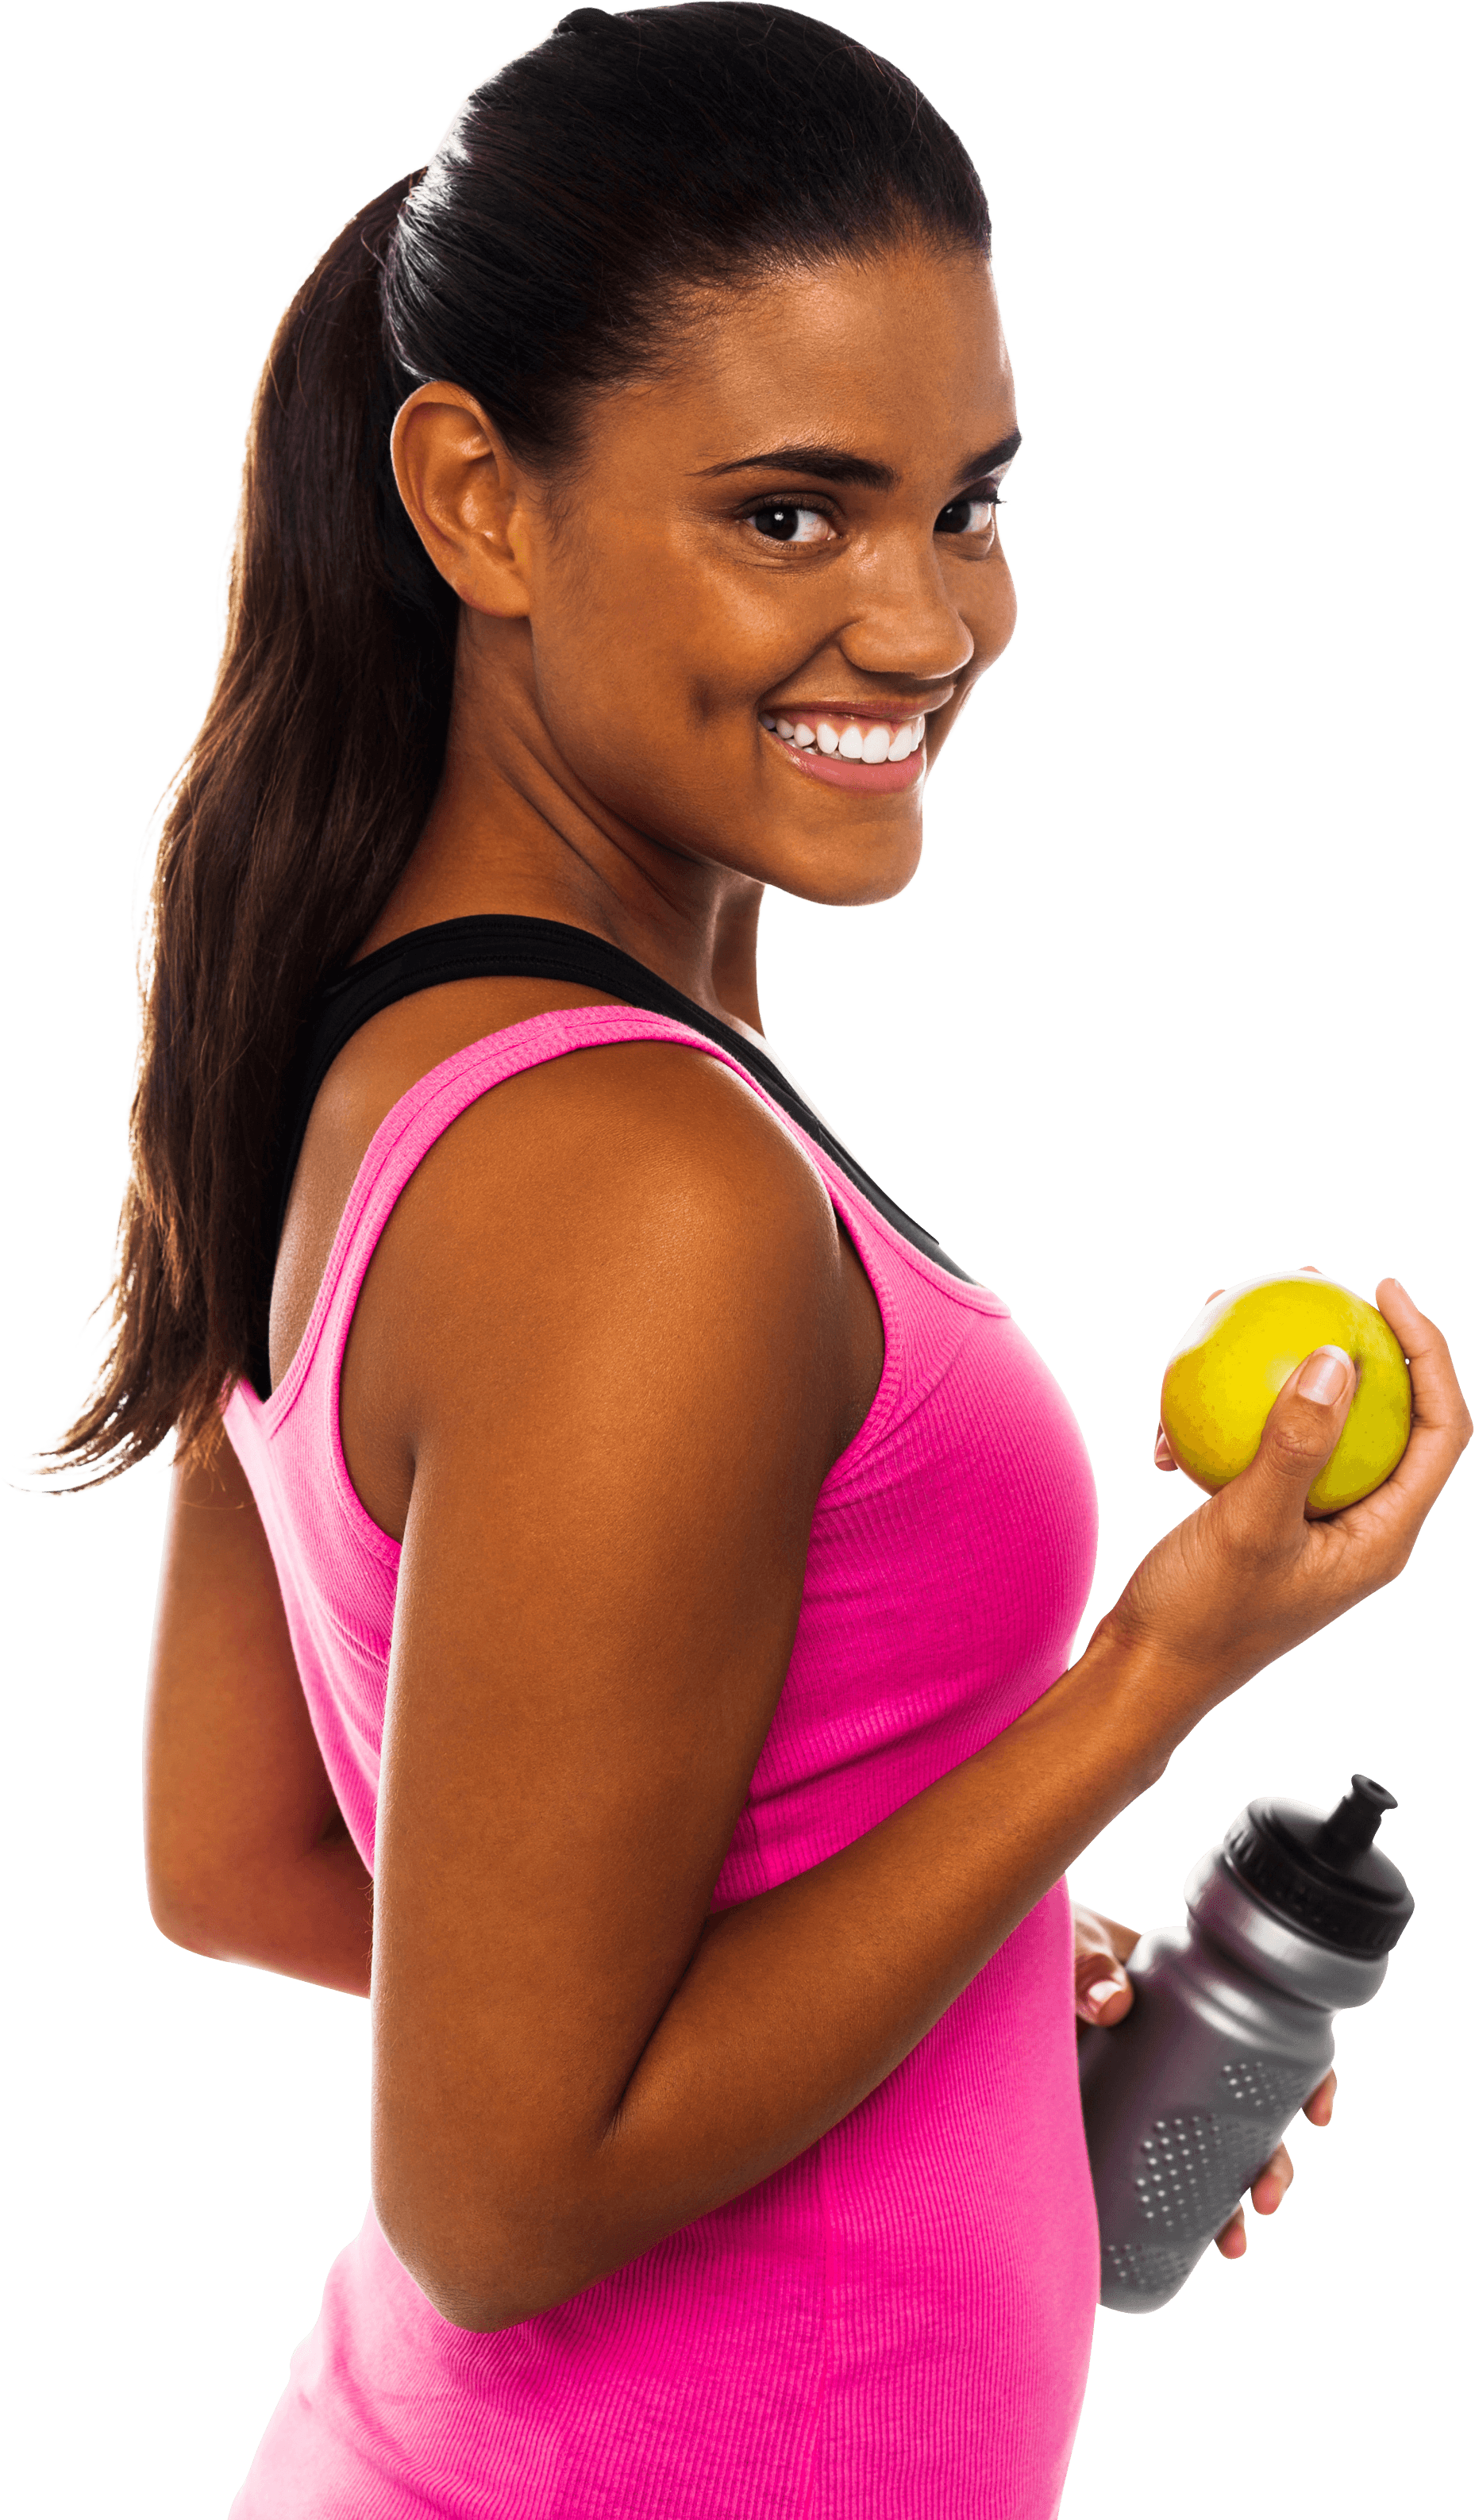 Muscle girl png. Fitness peoplepng com